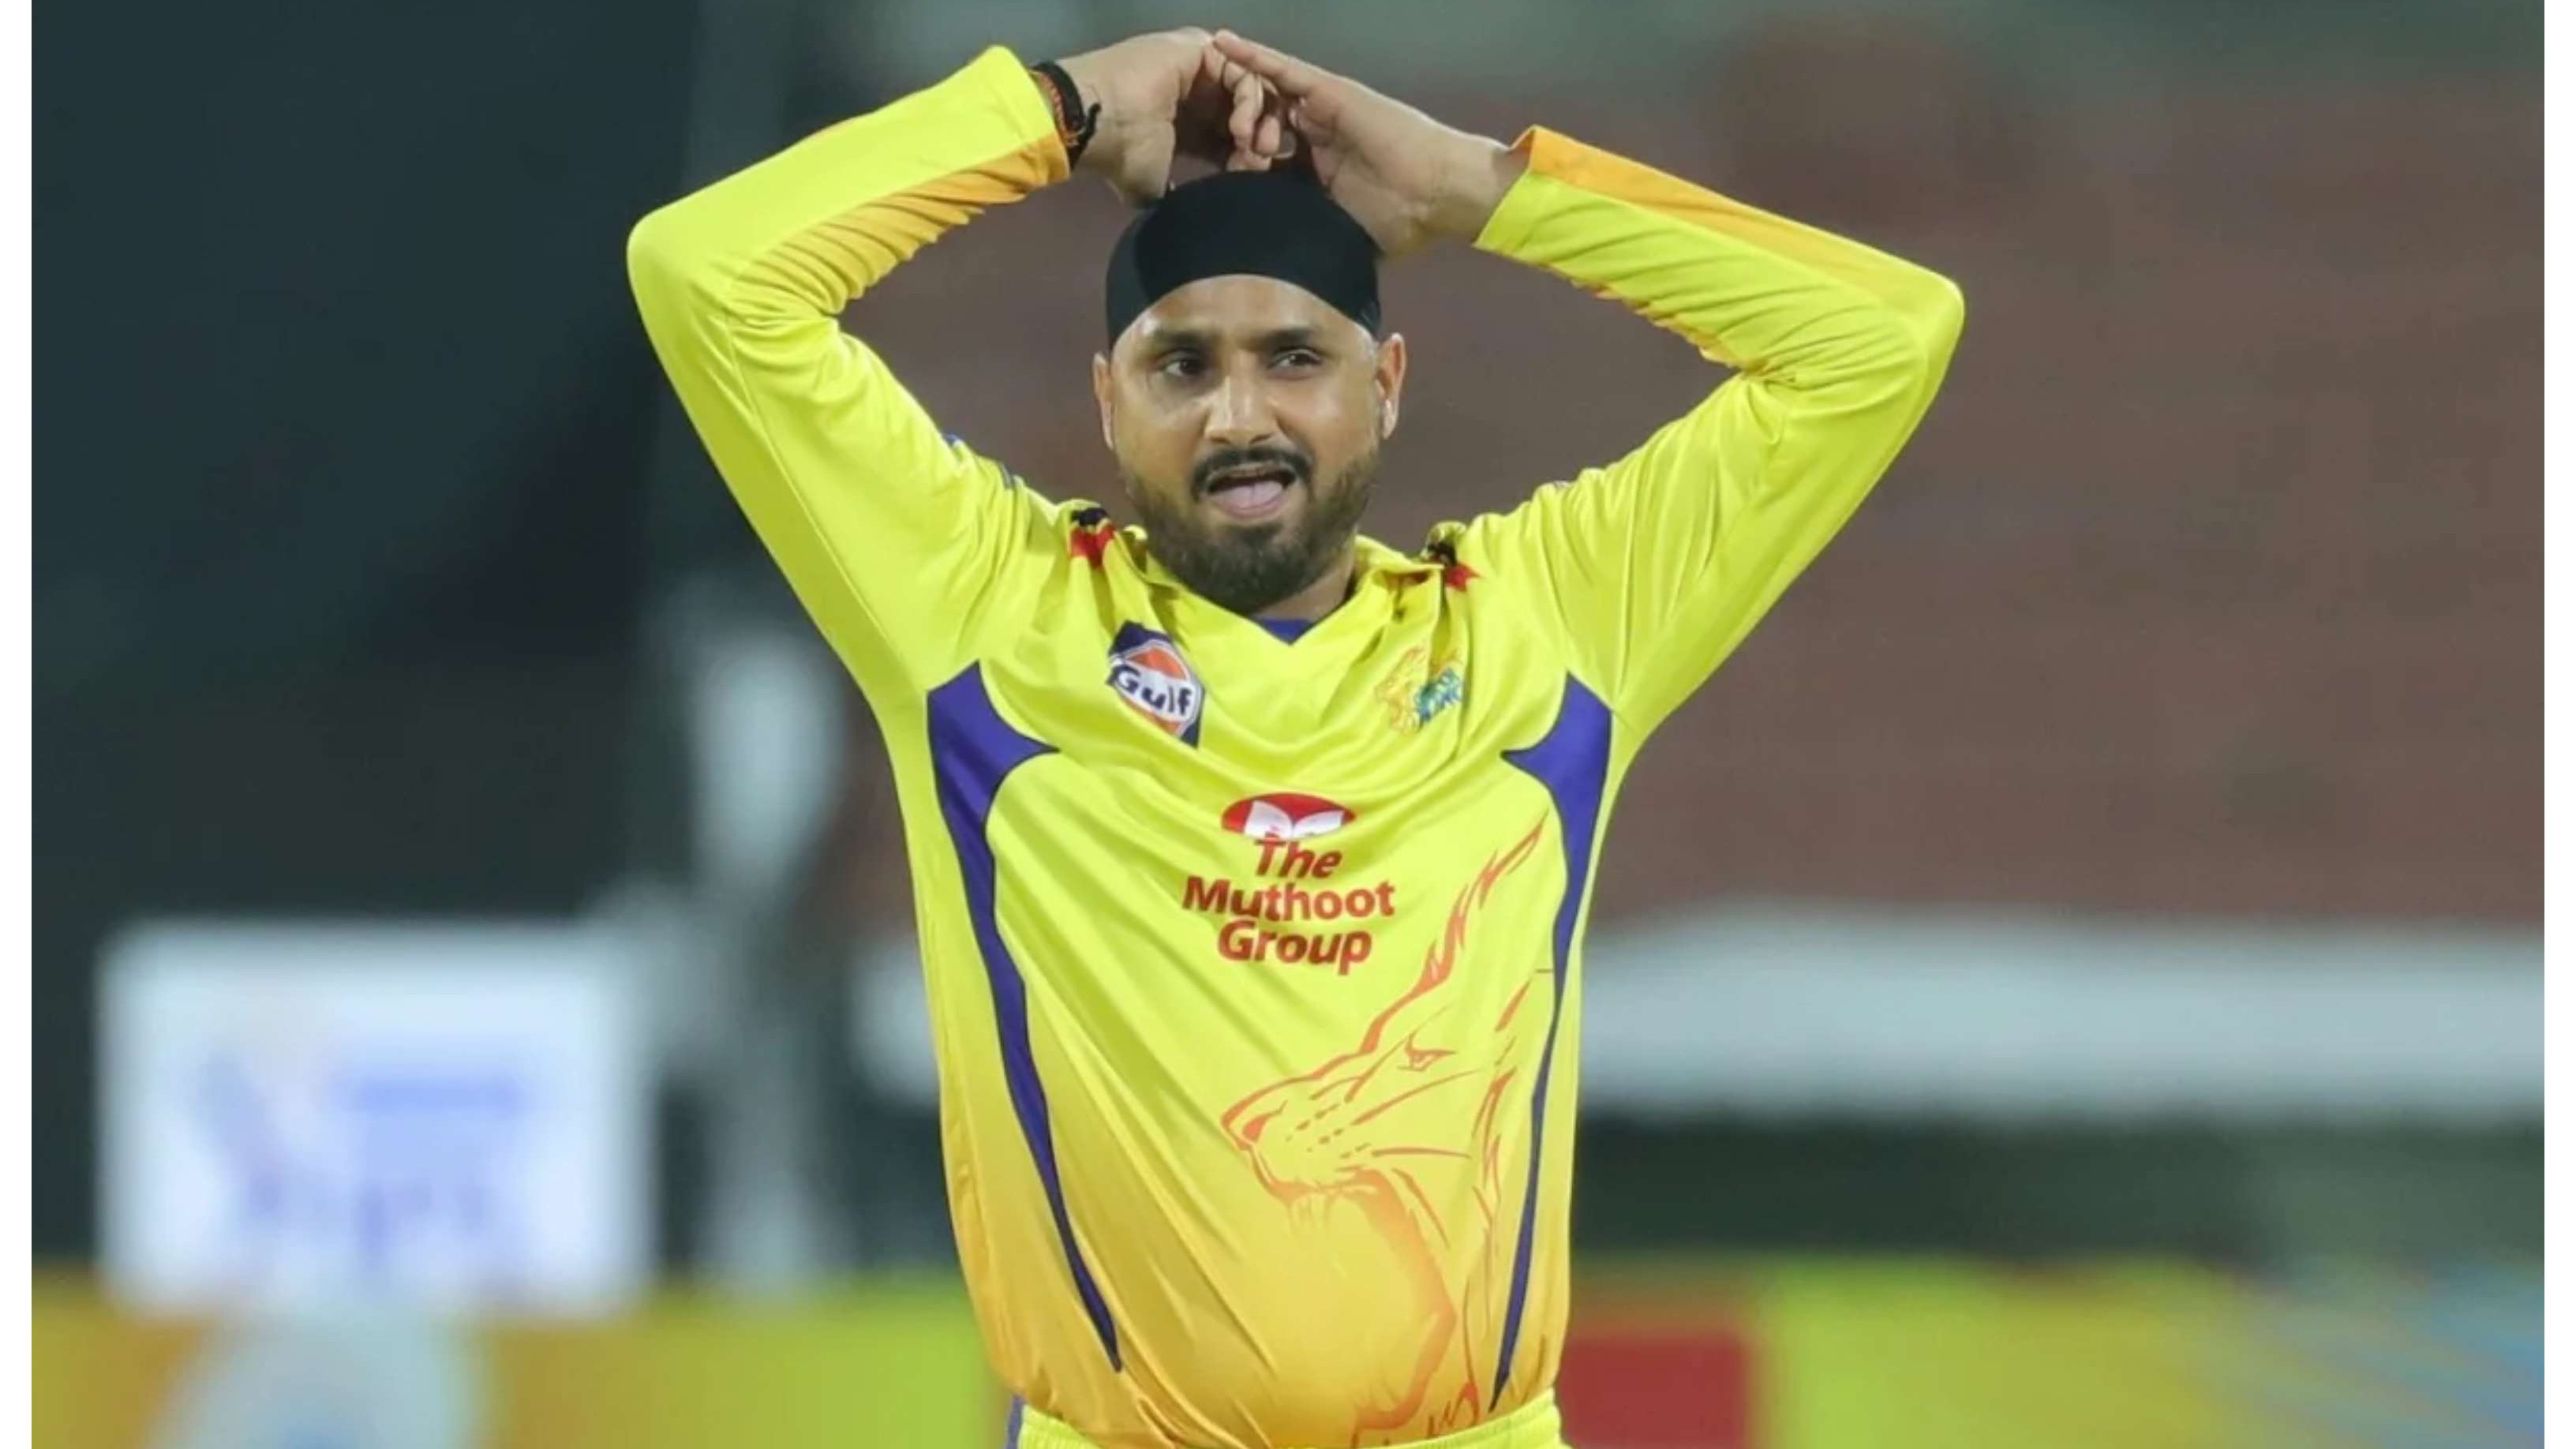 IPL 2021 Auction: Harbhajan Singh fails to attract a bidder in the auction